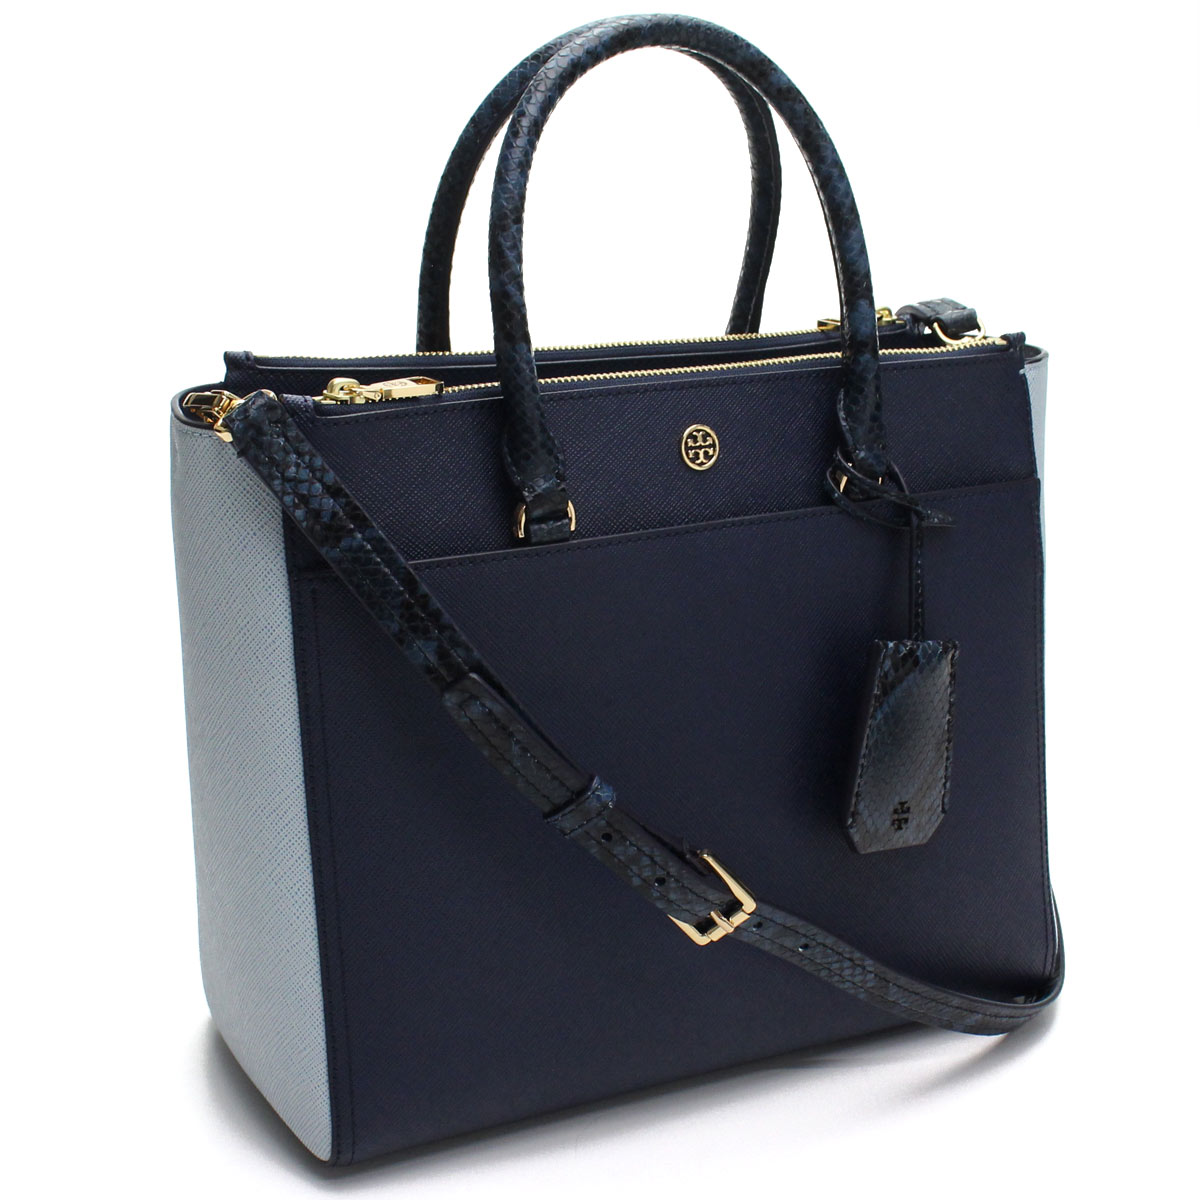 トリーバーチ TORY BURCH ROBINSON MIXED-MATERIALS トートバッグ 50989 425 ROYAL NAVY/BLUE MULT ブルー系 【レディース】